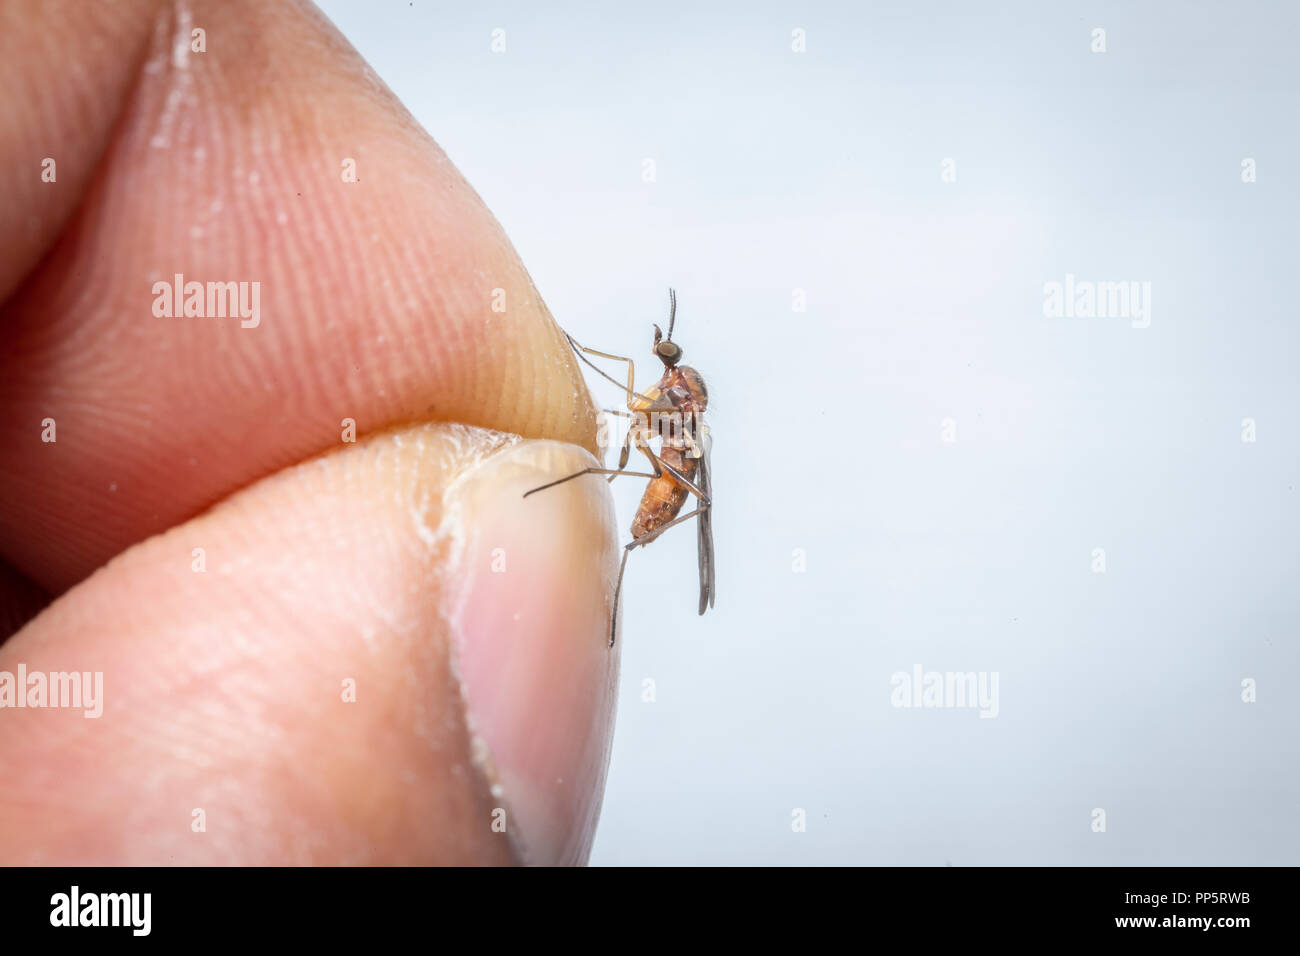 mosquito on a pinch of finger - Stock Image